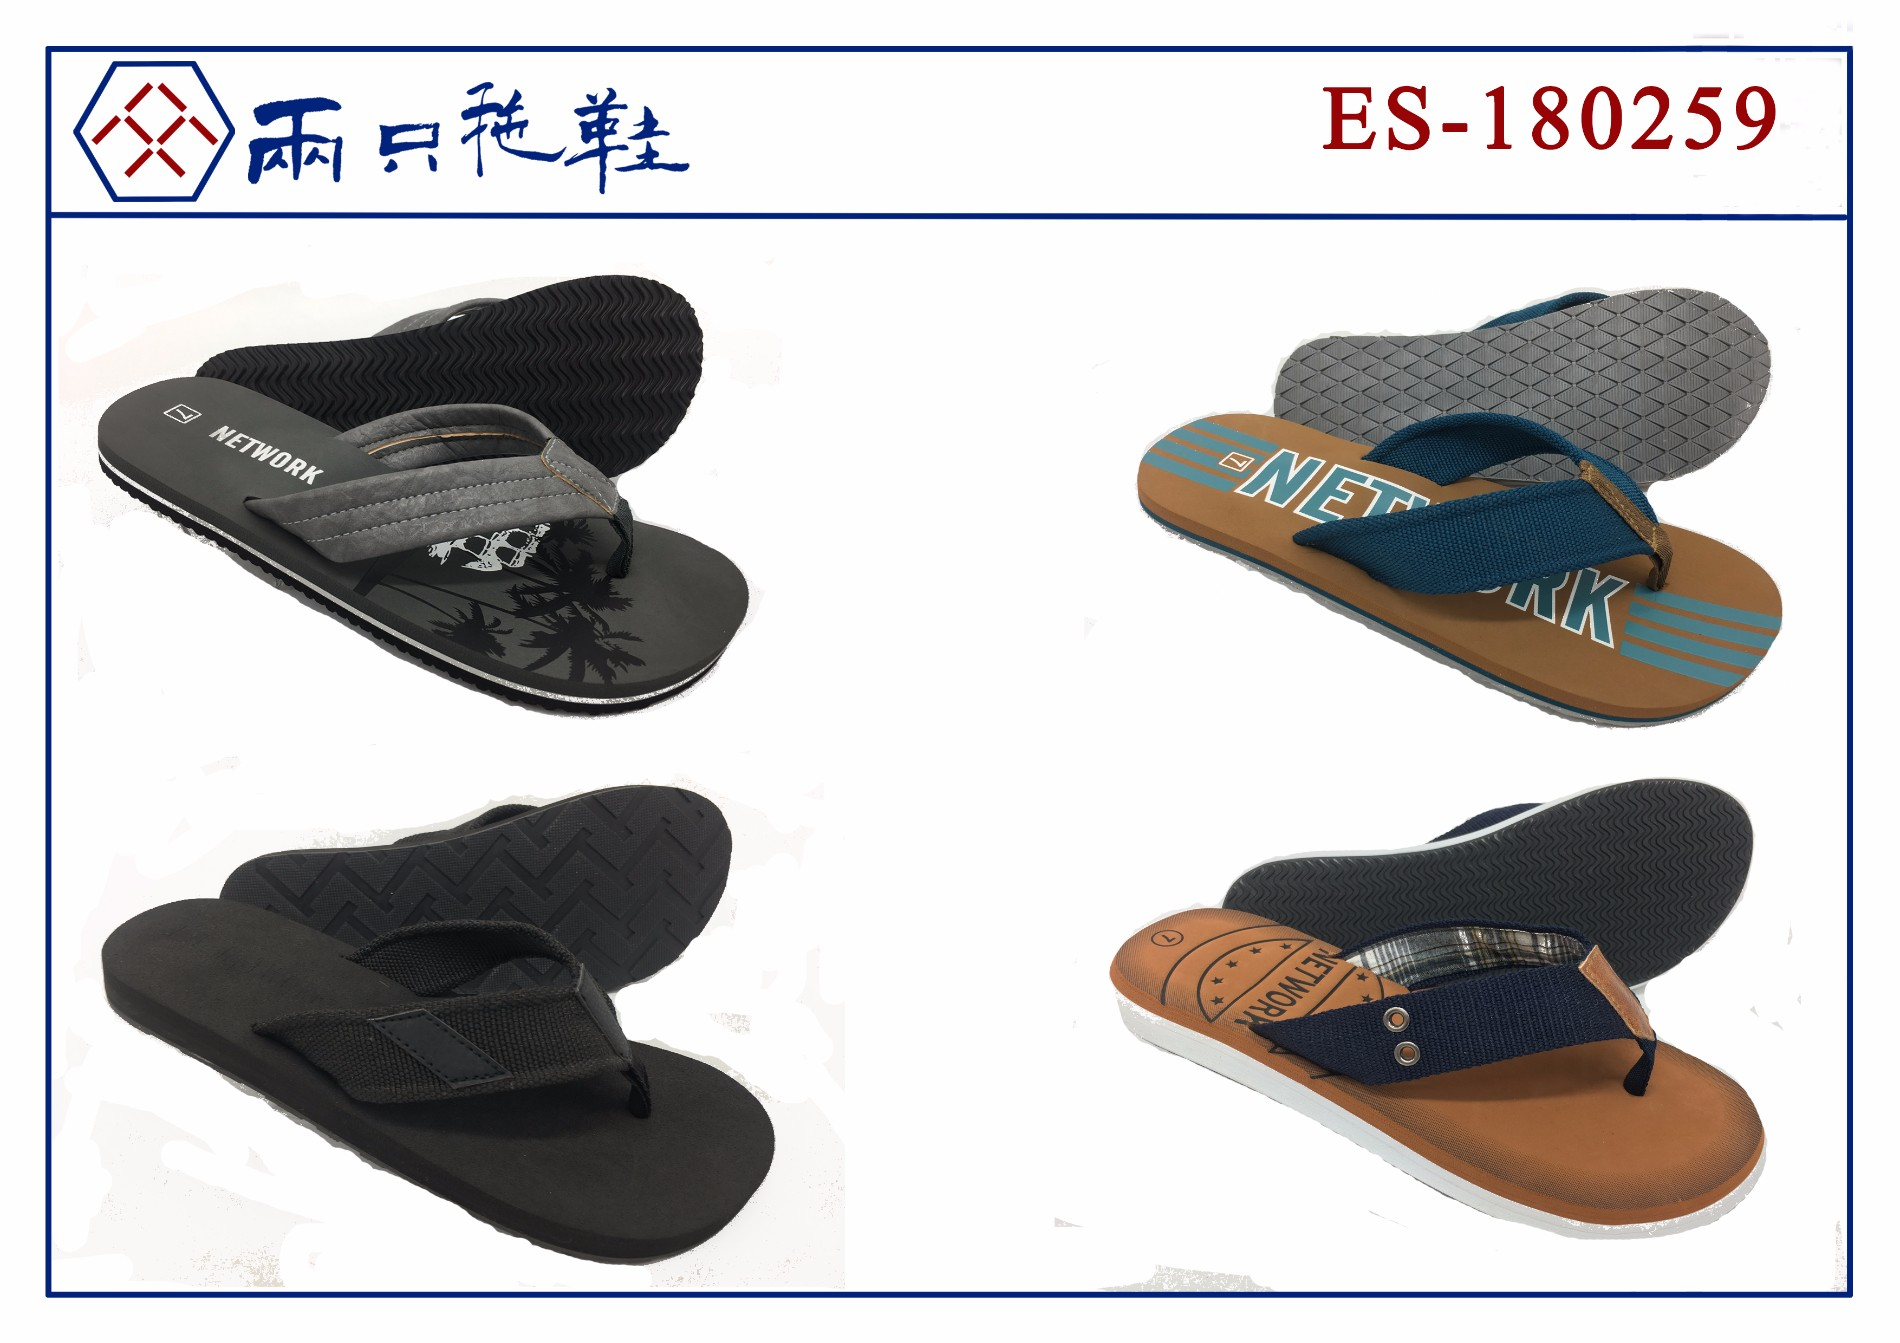 Different style slippers